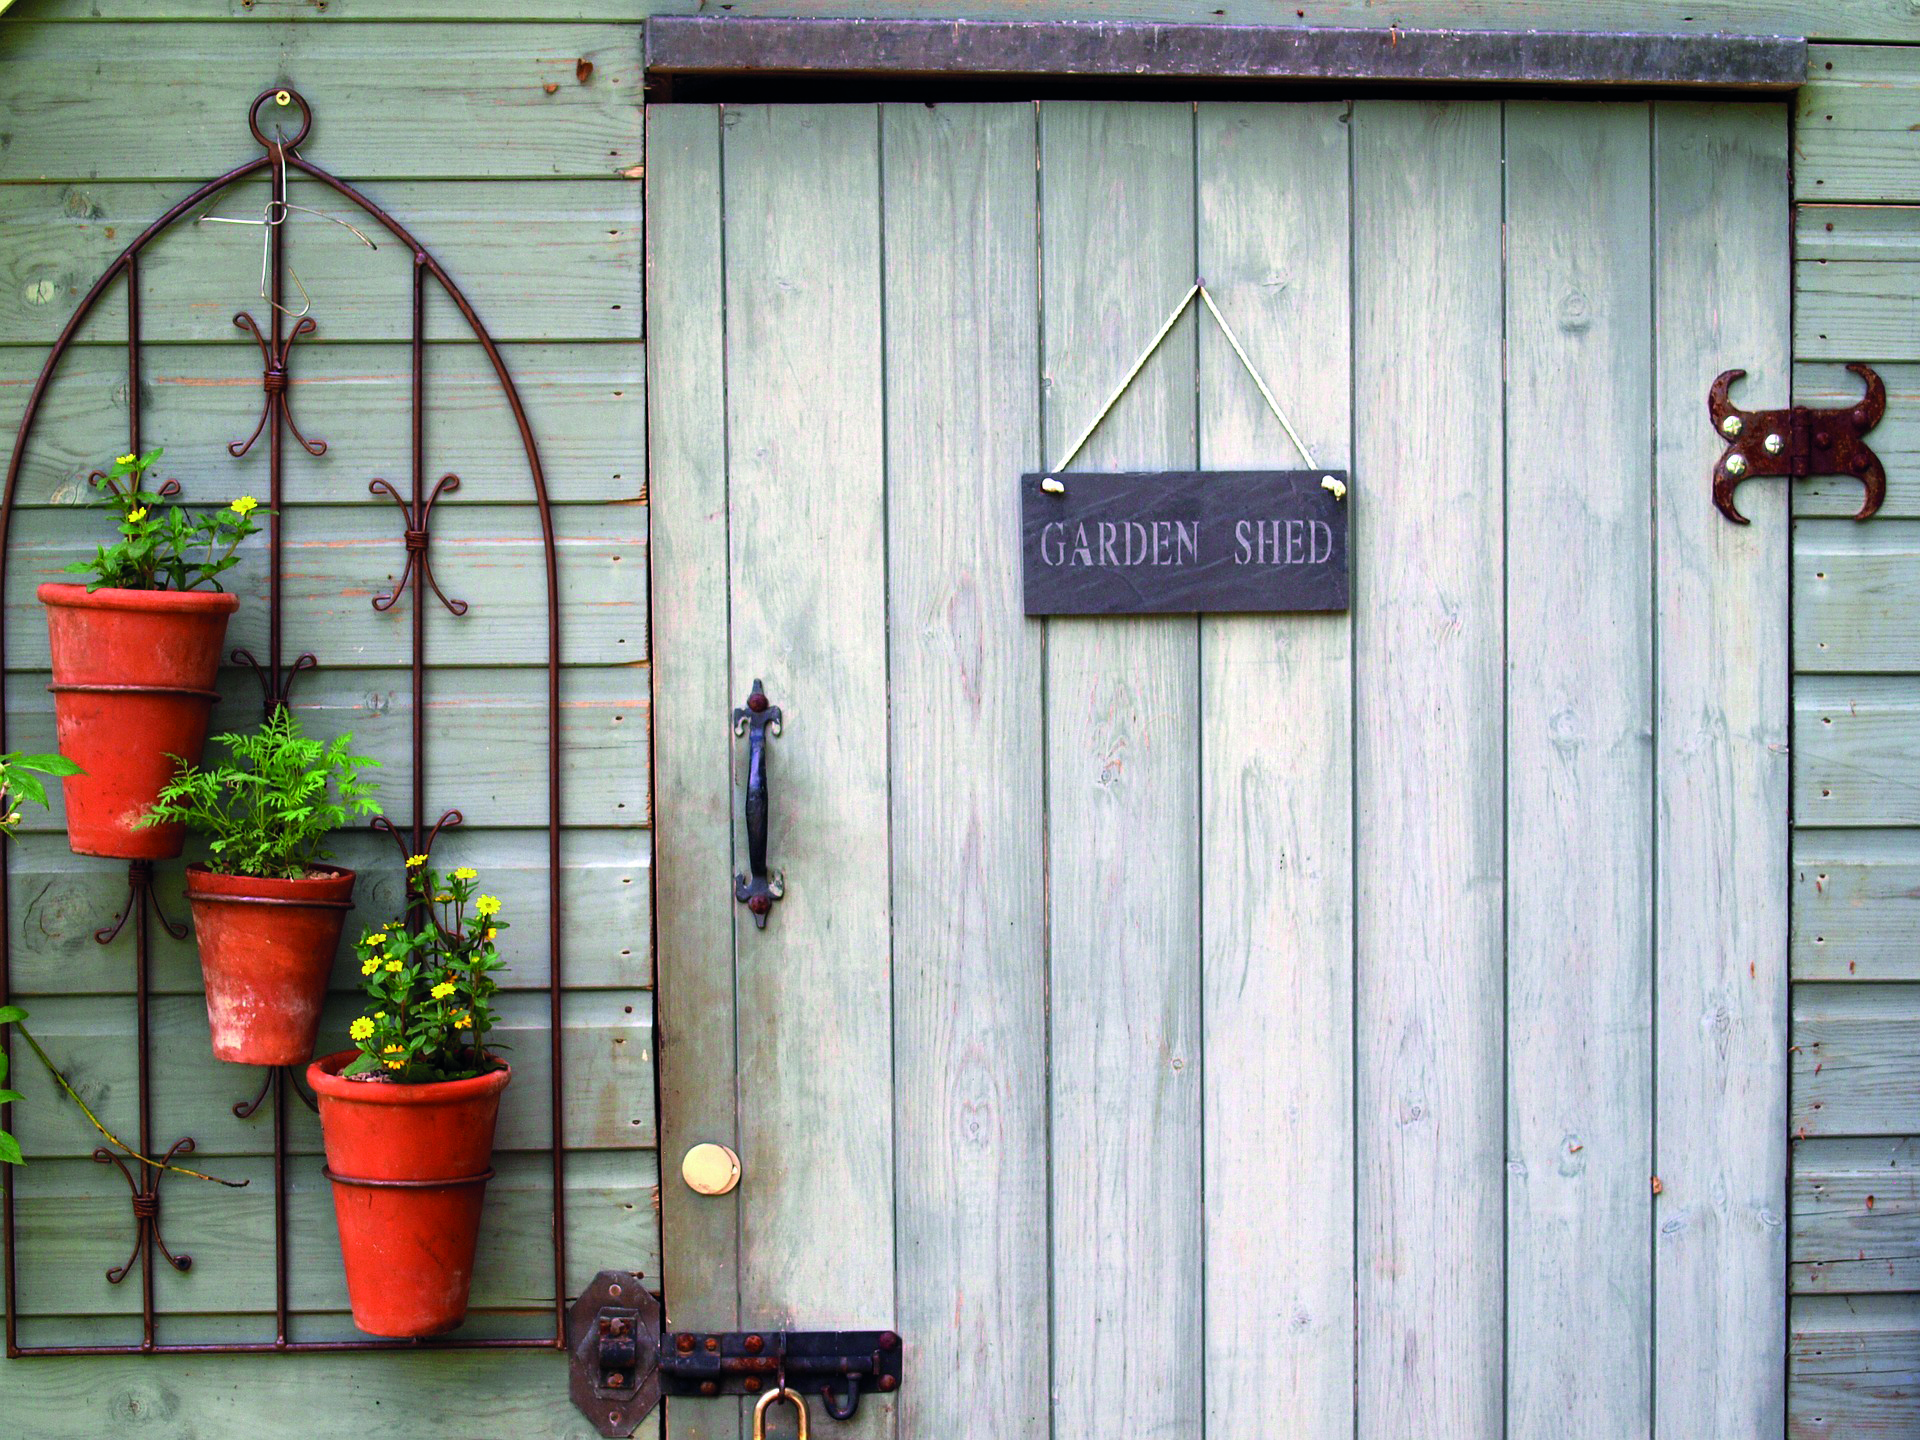 Garden Sheds Selfbuild, How To Hang Things In A Garden Shed